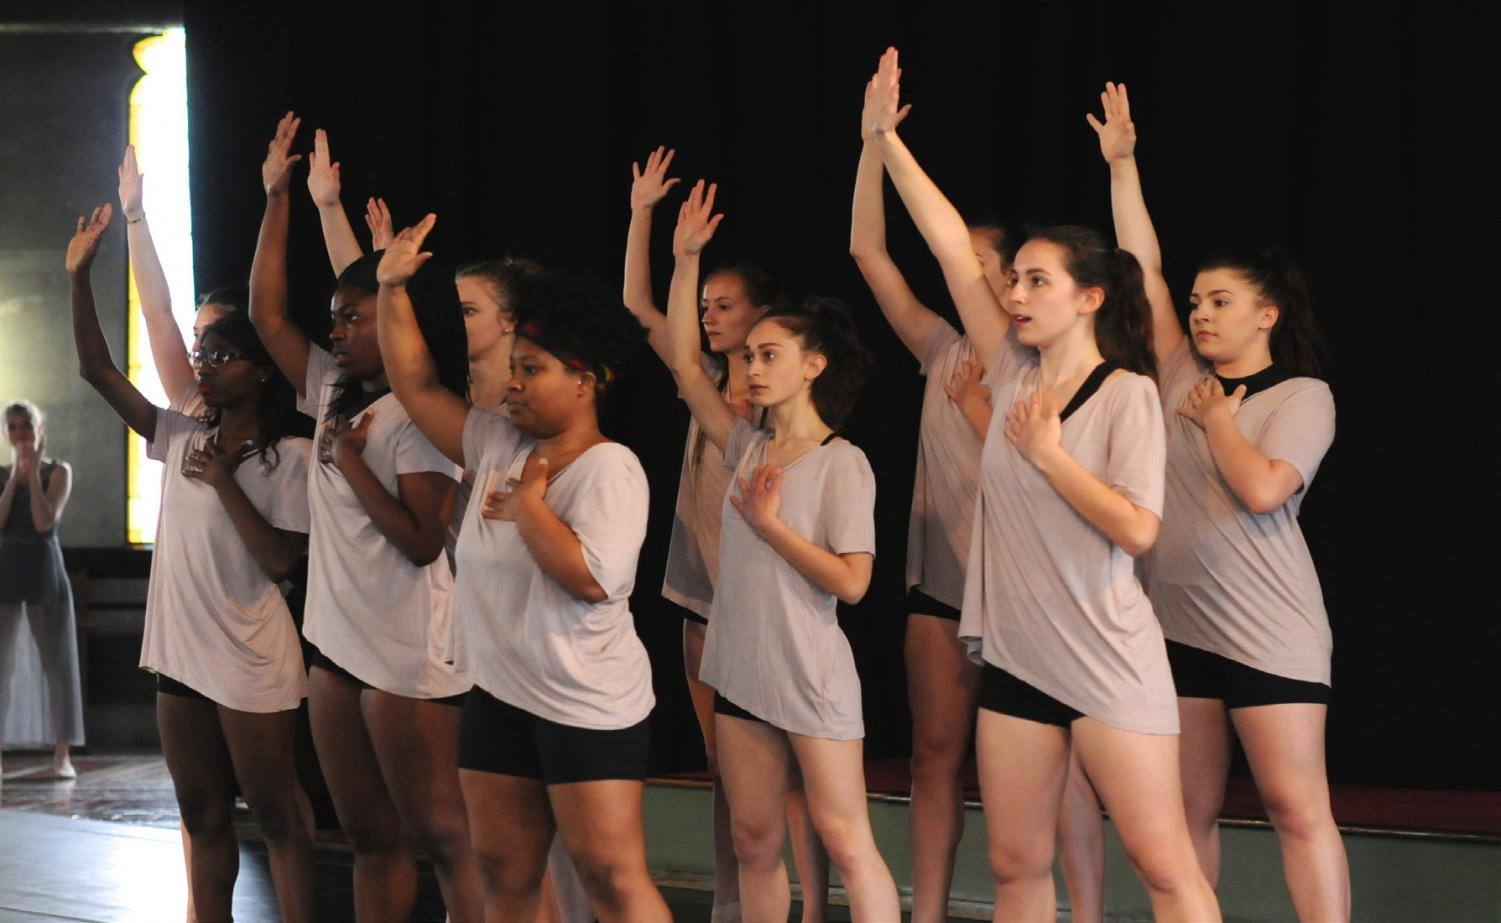 Students rehearsing for the annual Steinmetz Dance Performance. Courtesy of Miryam Moutillet.